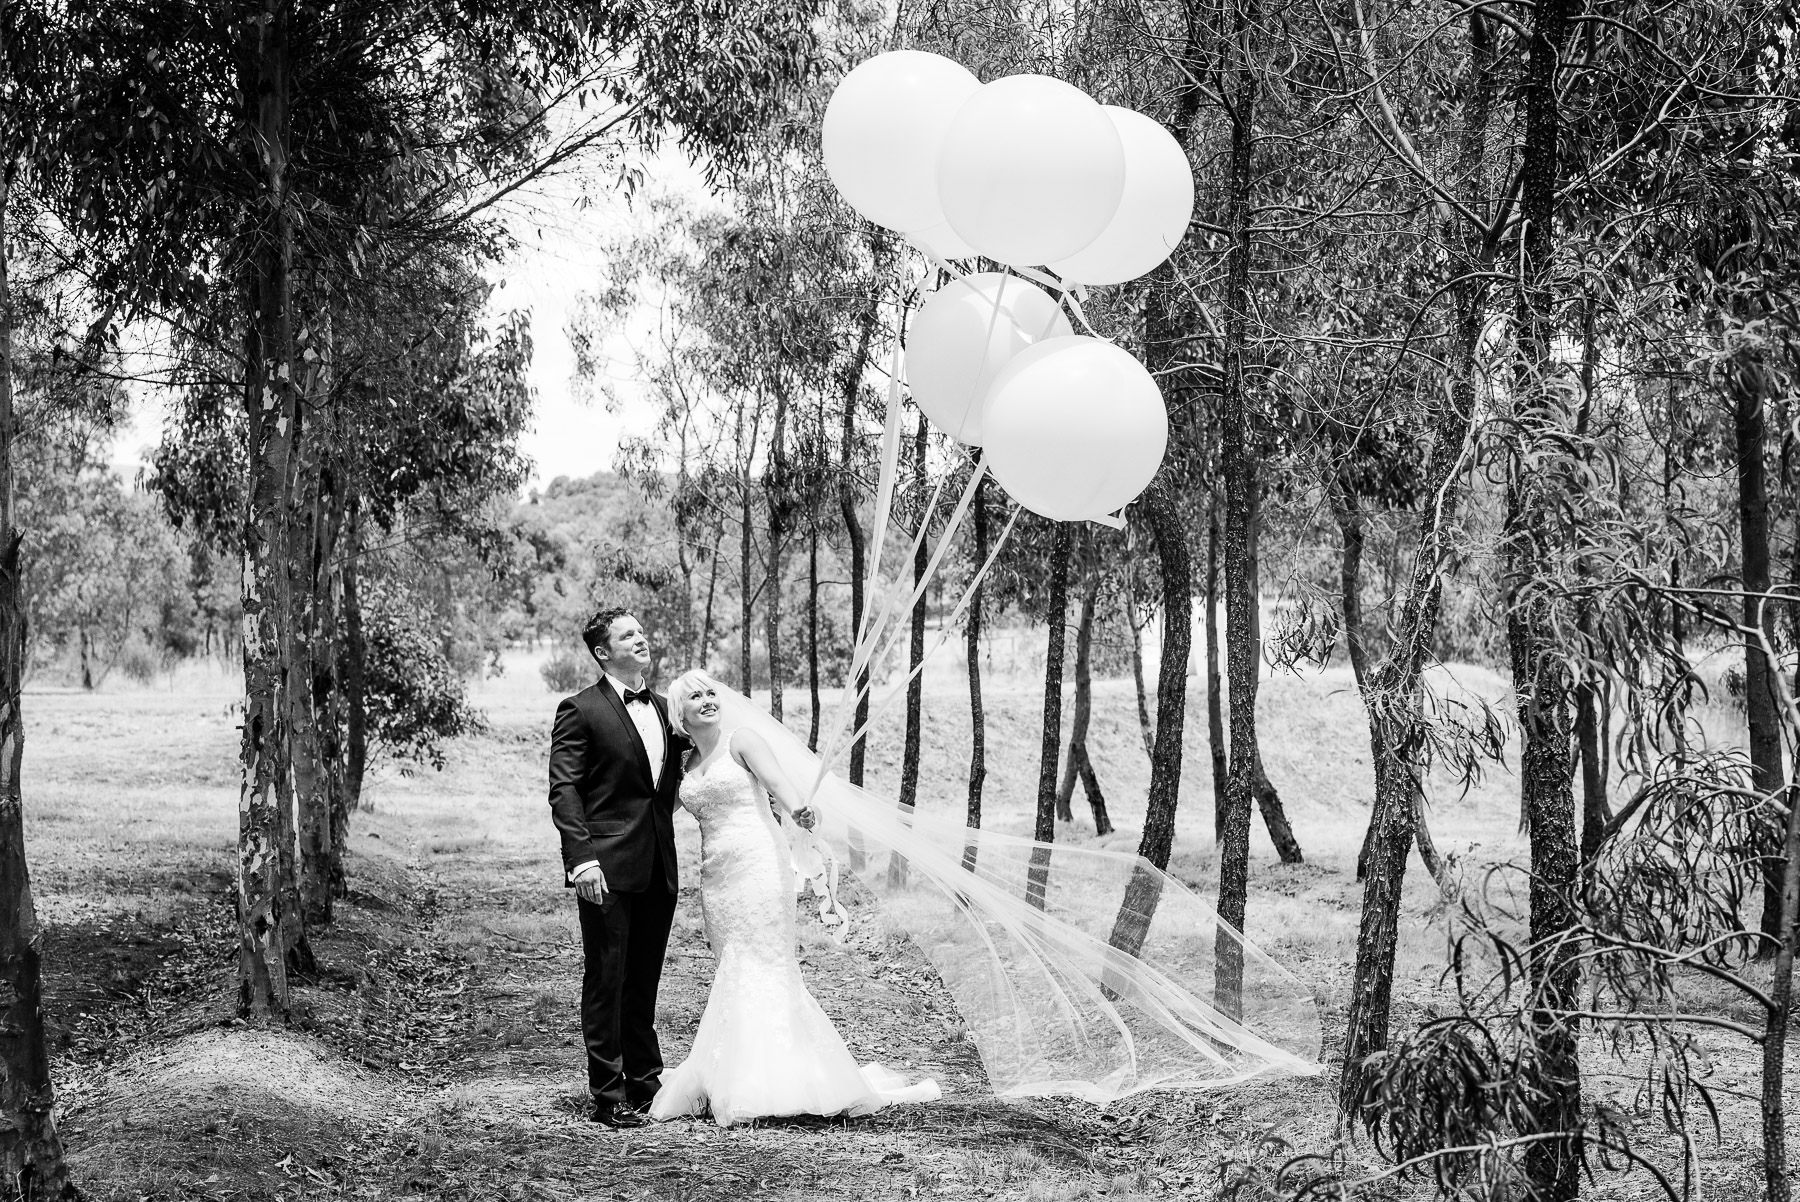 Justin_and_Jim_Best_Of_Wedding_Photography-44.jpg